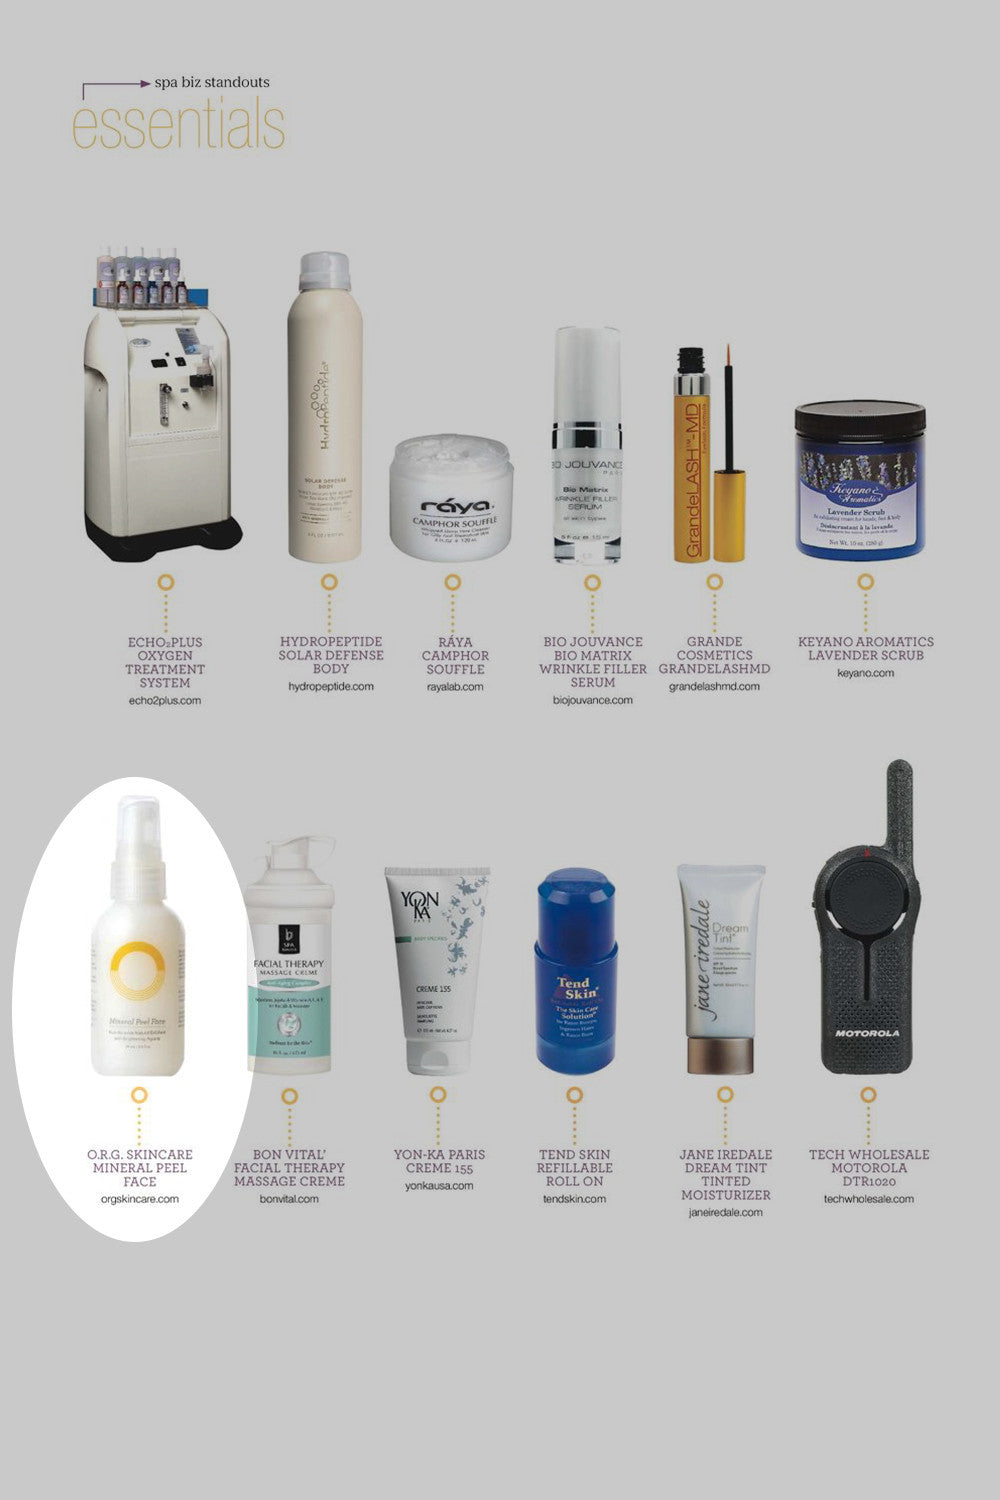 Dayspa-magazine-mineral-peel-face